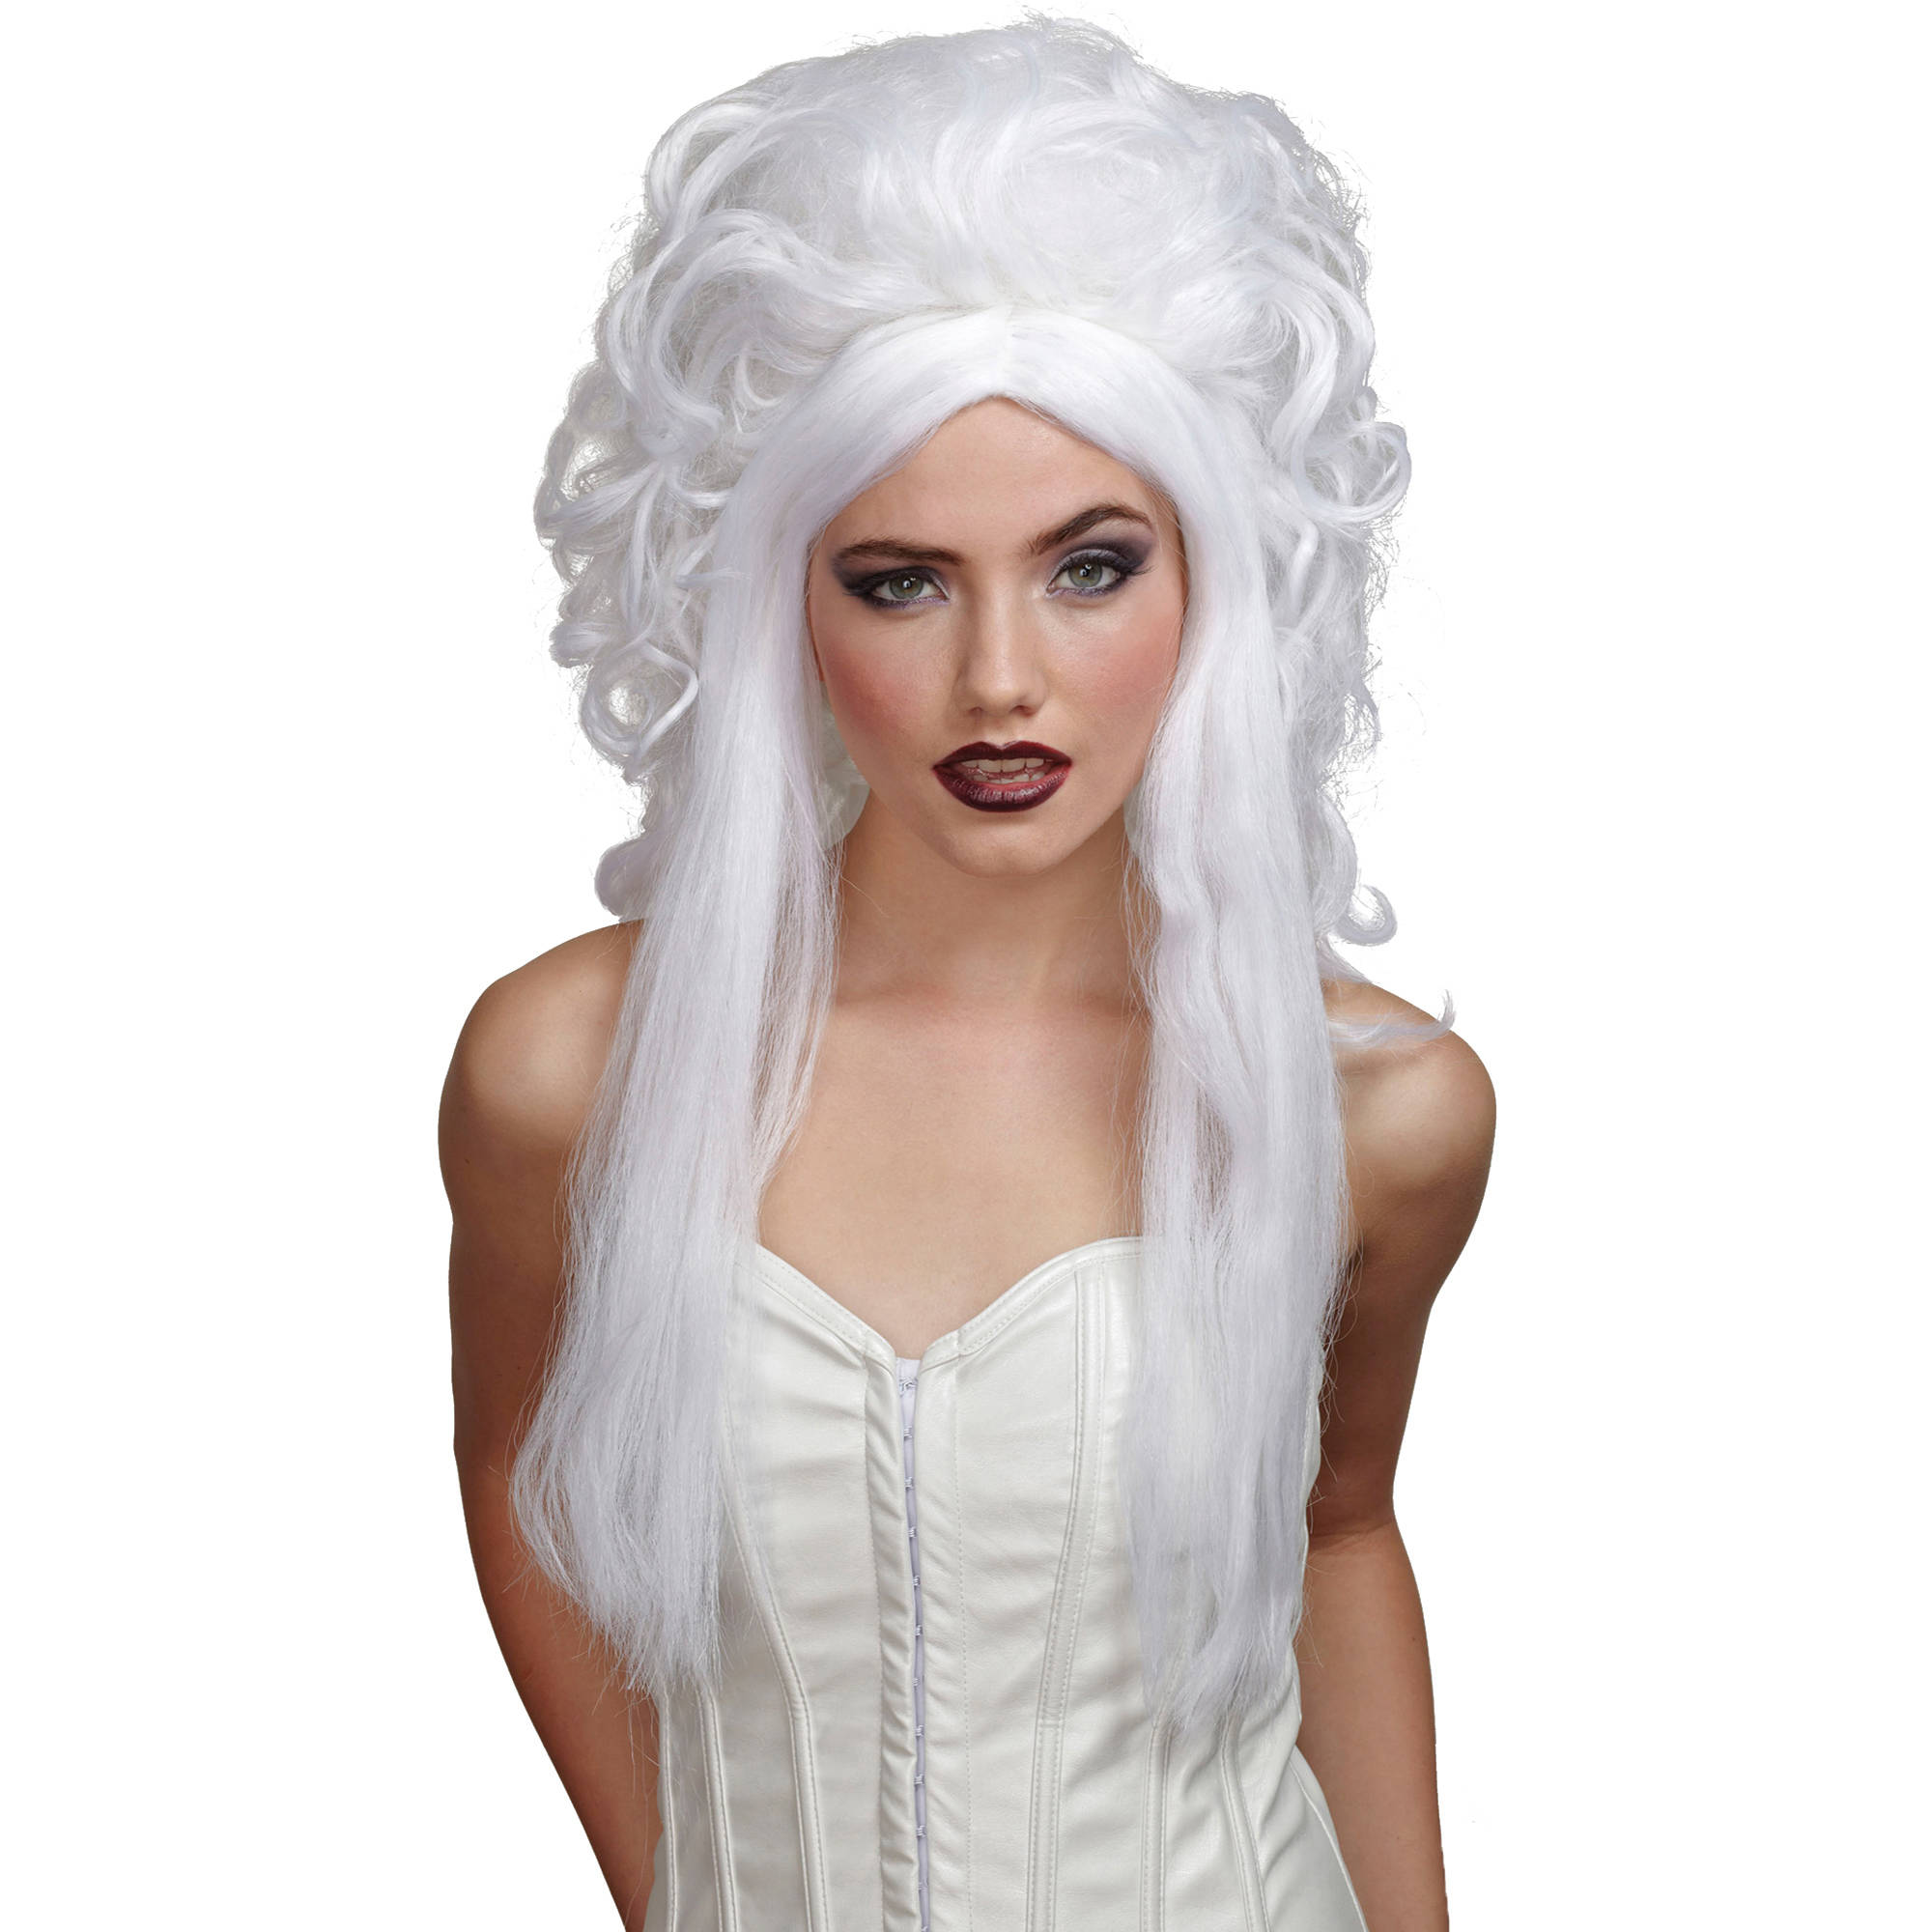 White Spirit Nightmare Wig Adult Halloween Accessory